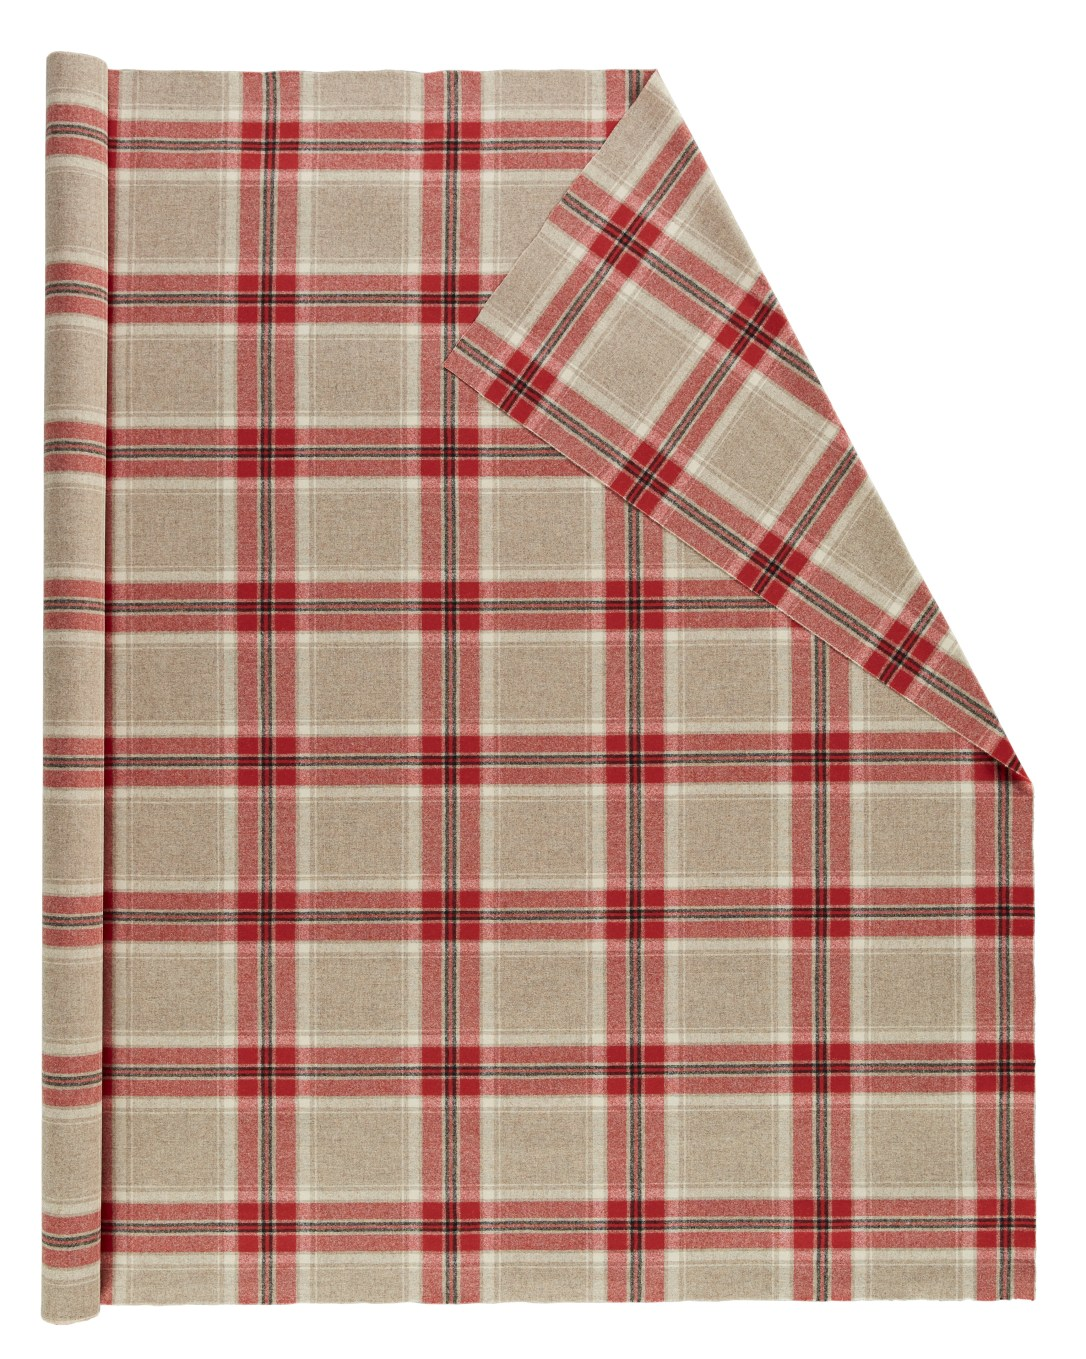 Roll of Pendleton wool fabric in tan, red and black plaid.